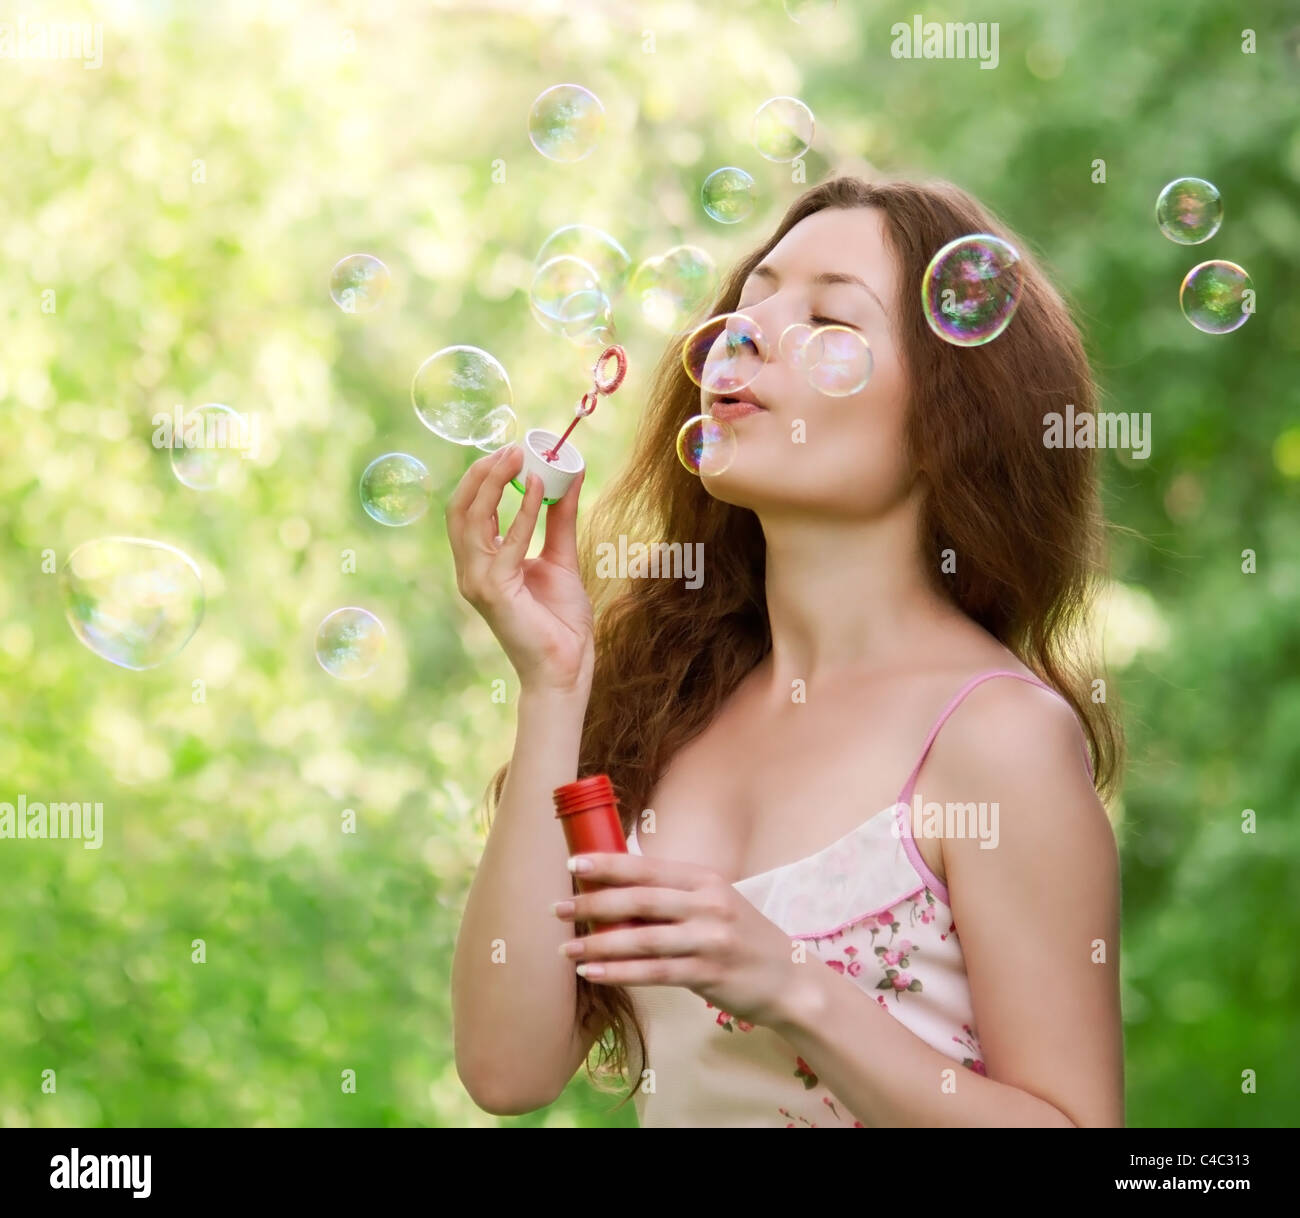 Young beautiful girl blowing bubbles in the park on green background - Stock Image